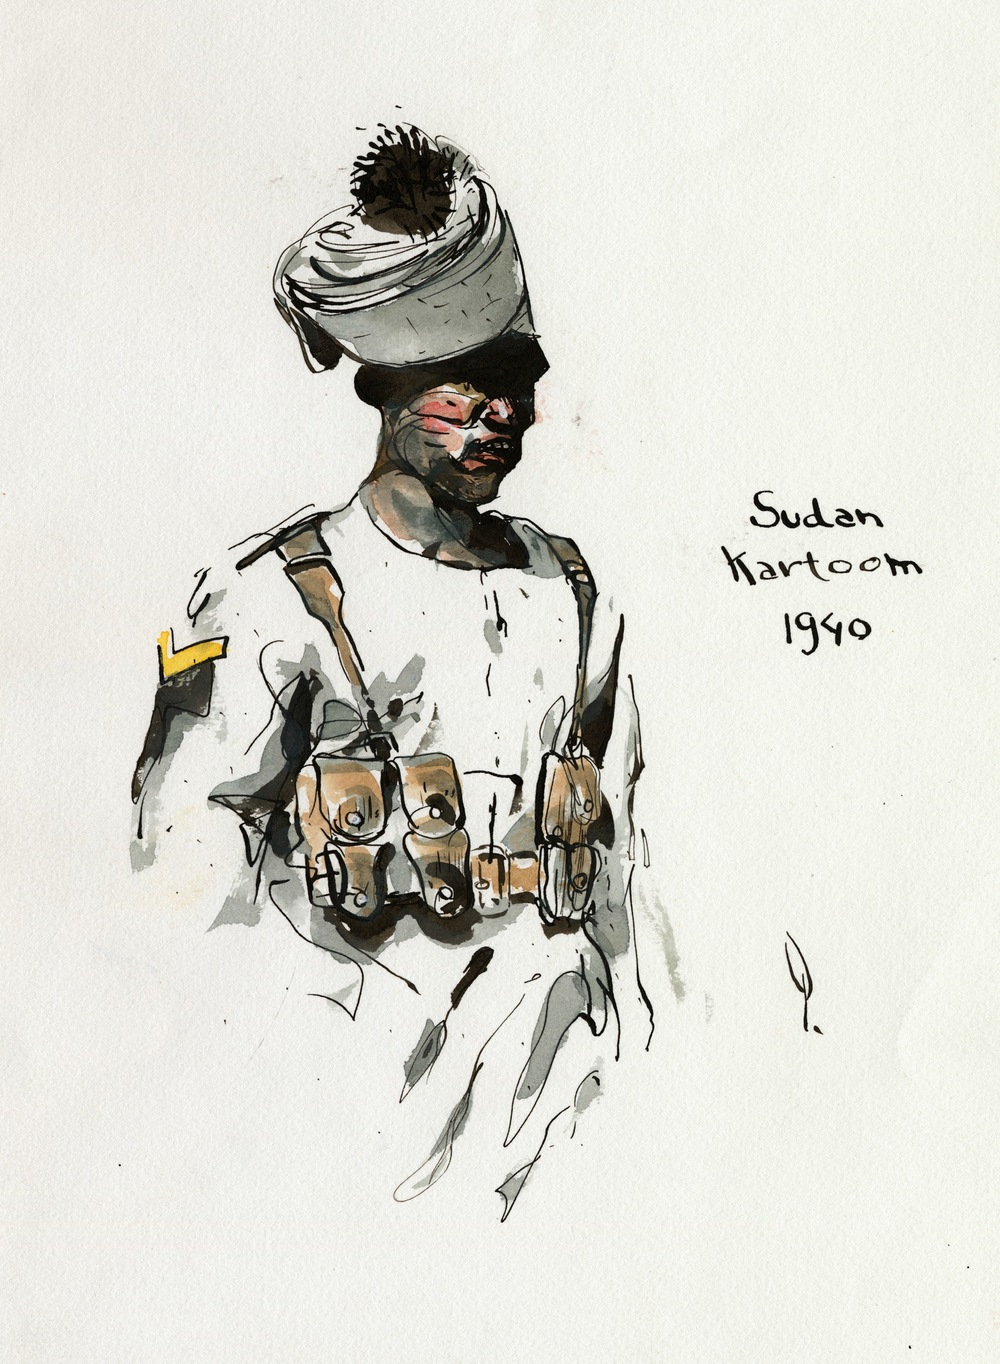 Sudan Kartoom 1940 Watercolor.jpg